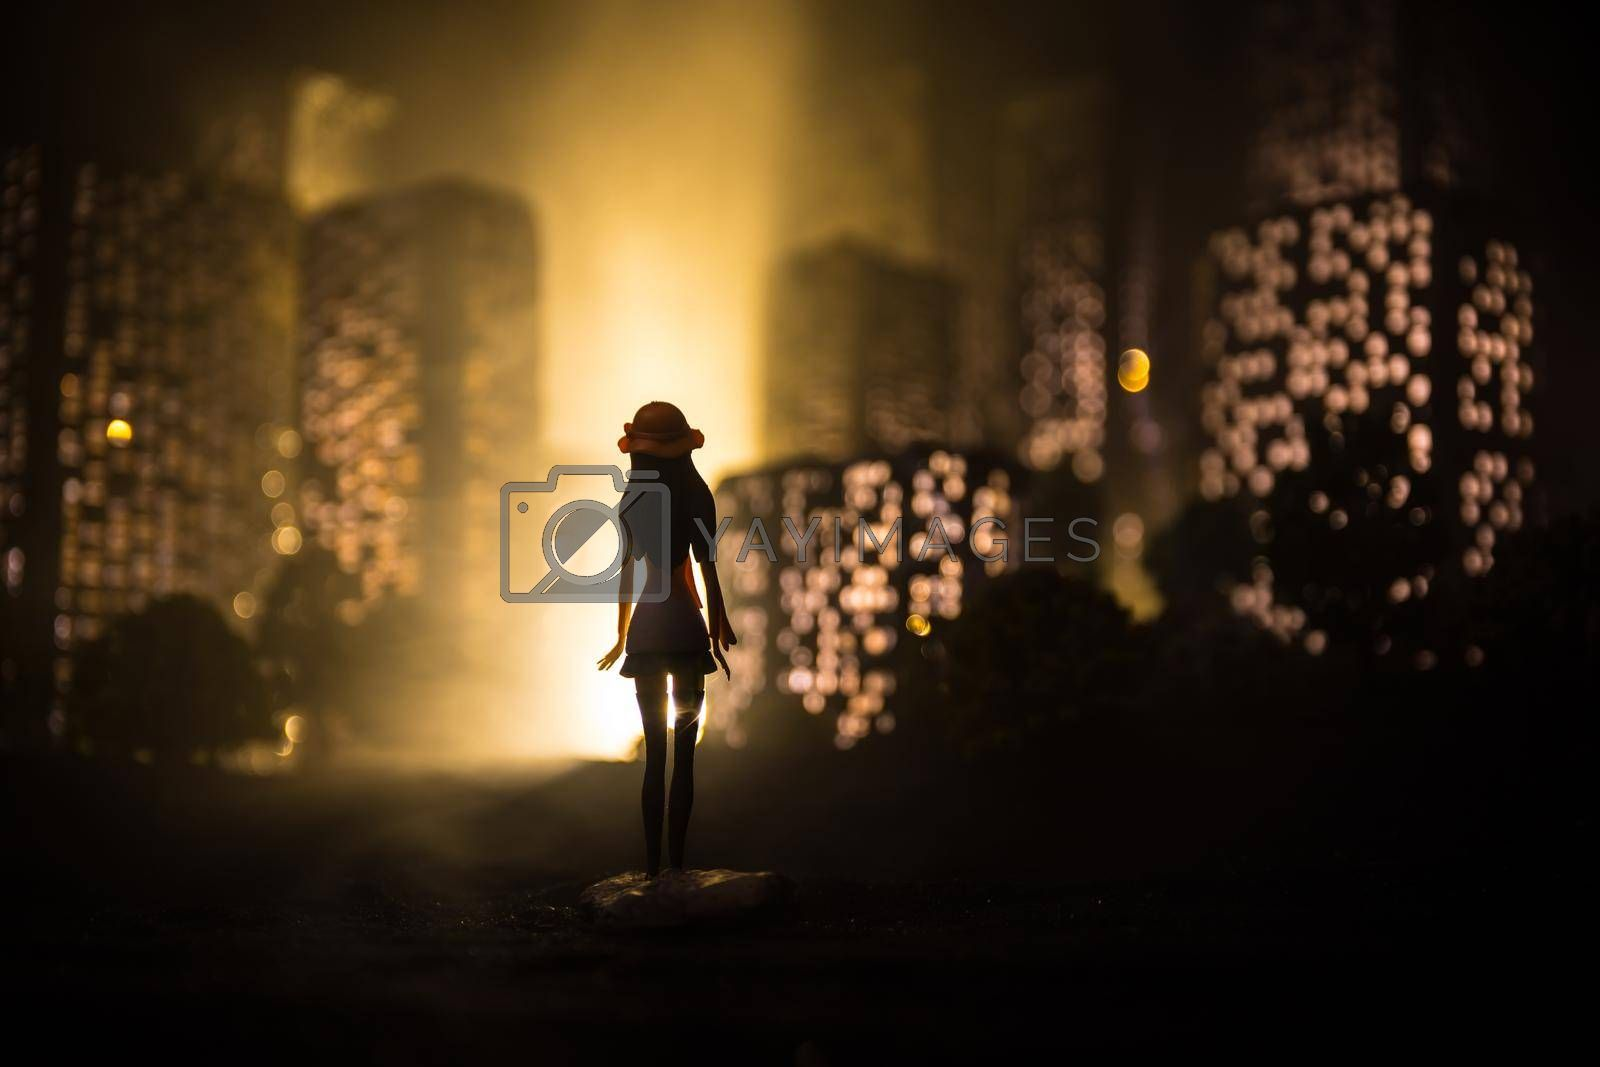 Cartoon style city buildings. Realistic city building miniatures with lights. background. Girl looking on night city. Selective focus